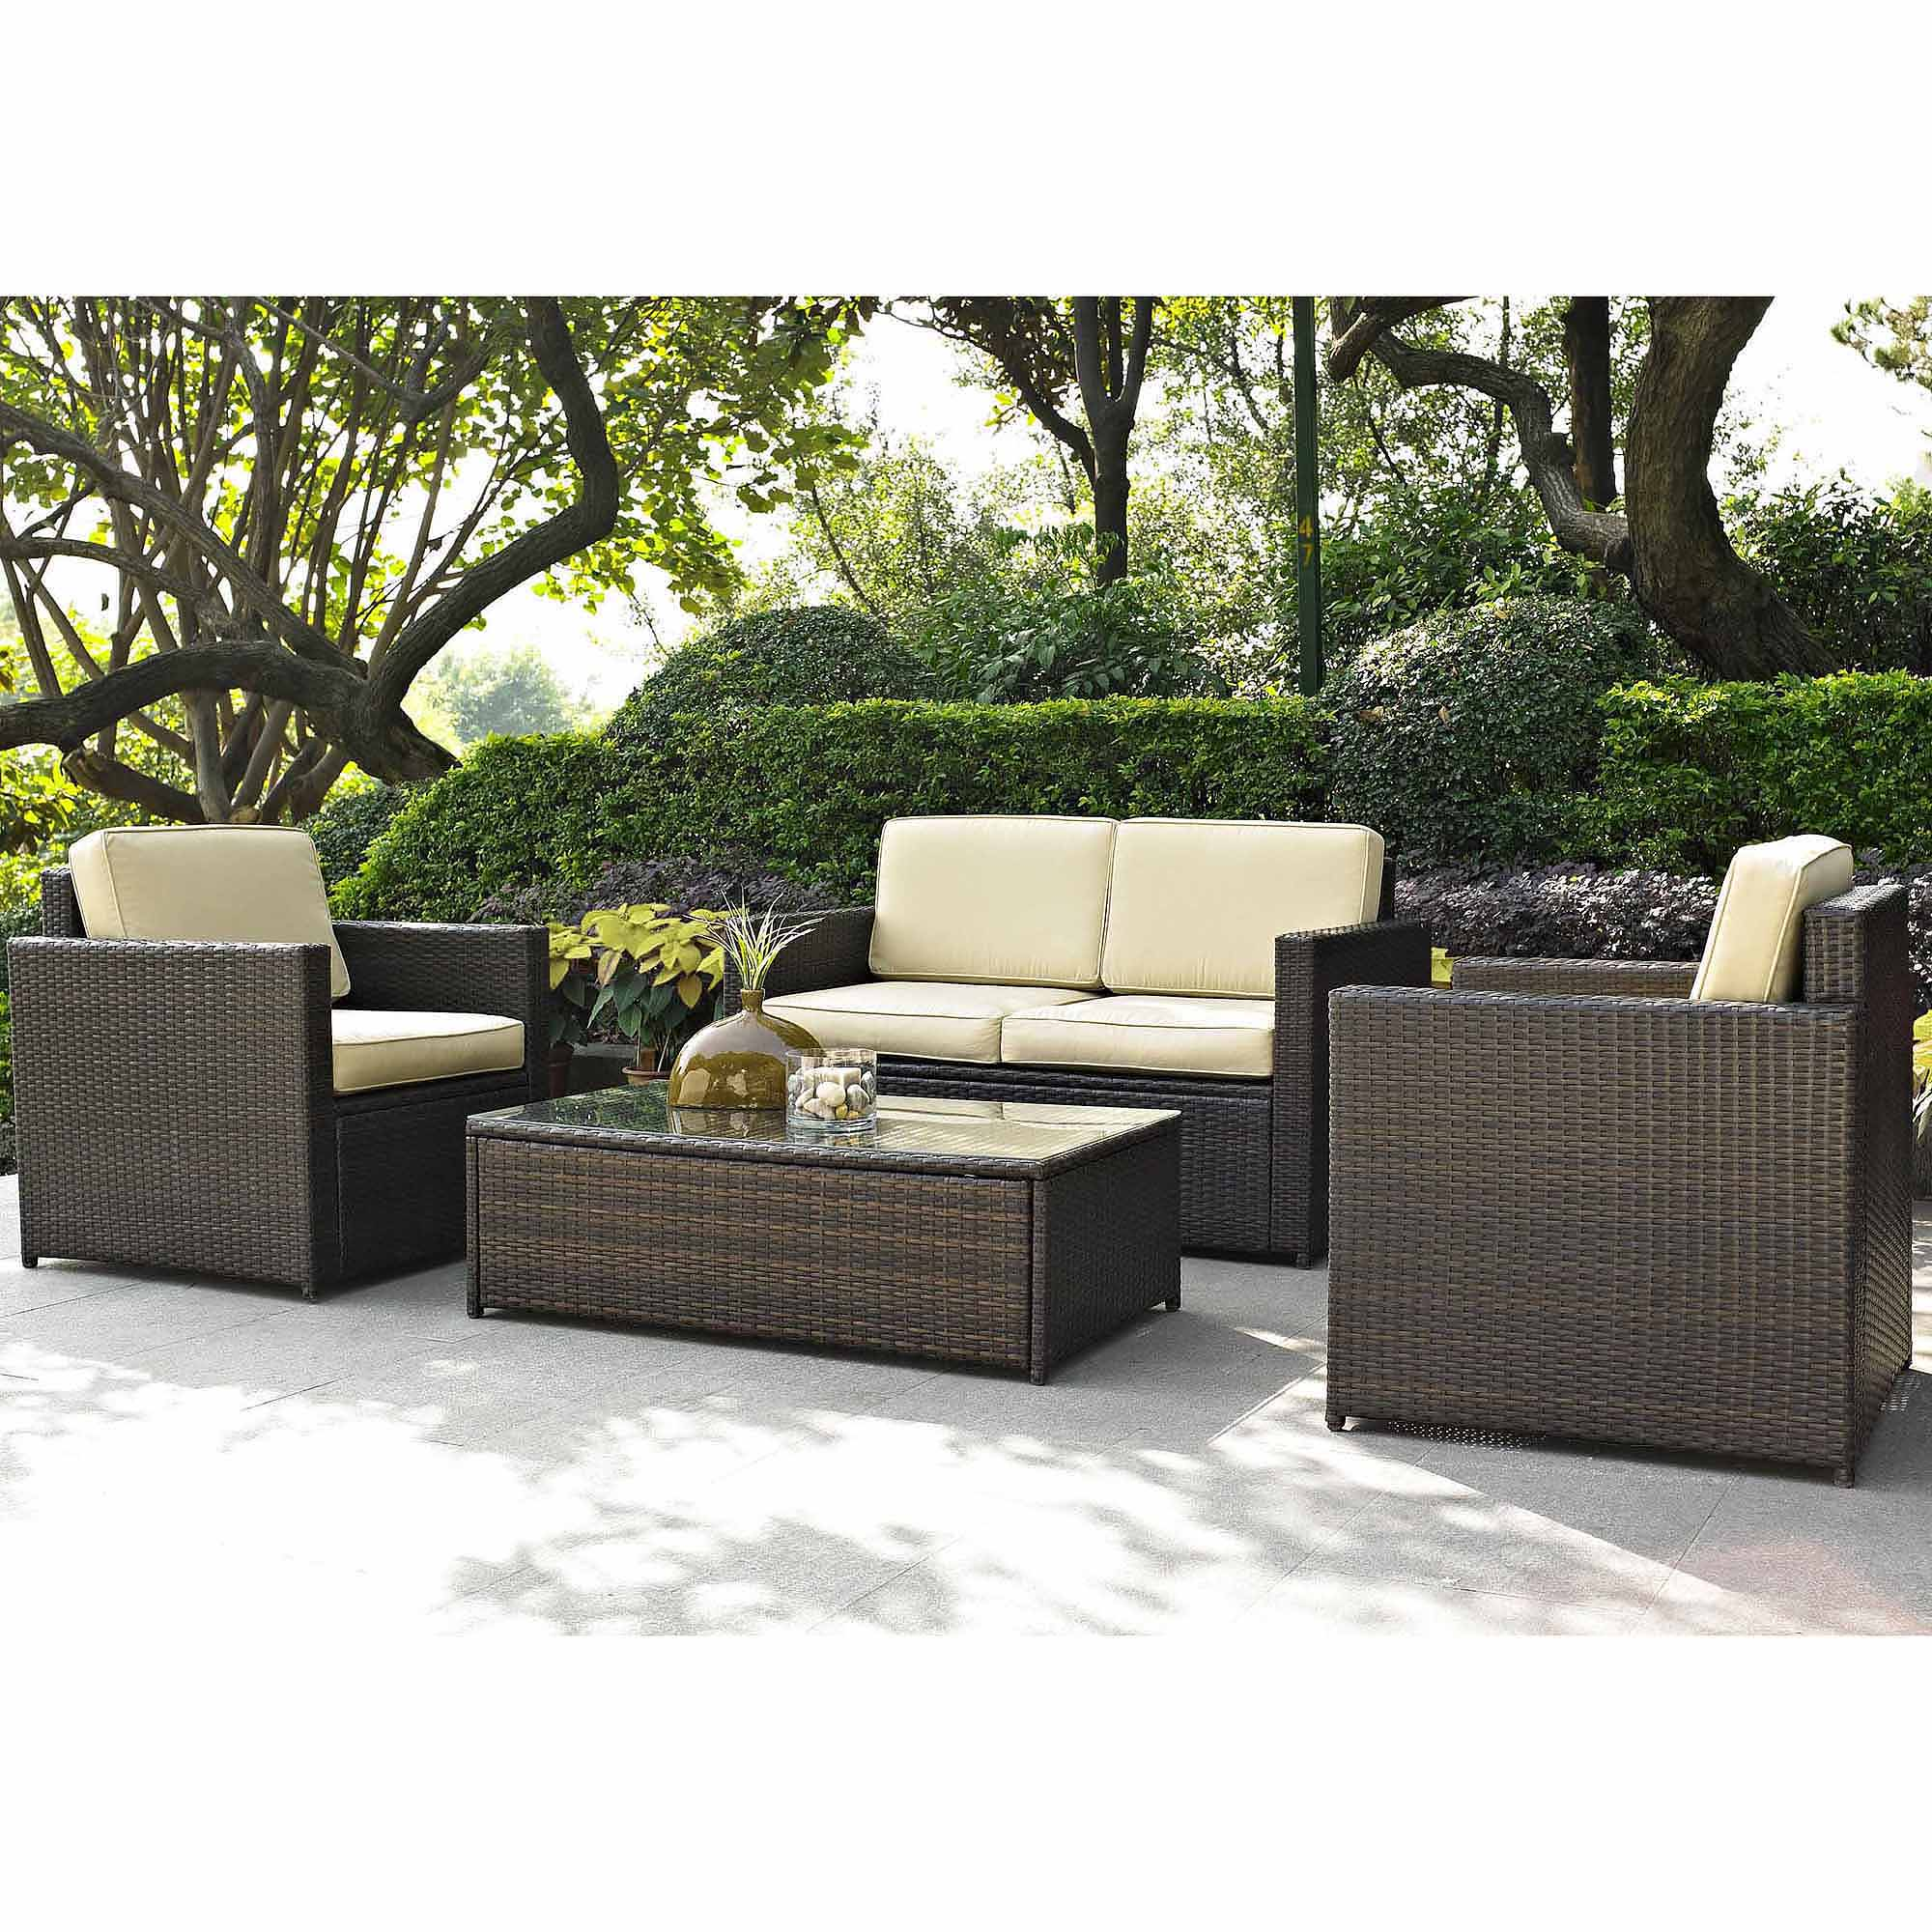 Best Choice Products 4-Piece Wicker Patio Furniture Set w/ Tempered Glass,  3 Sofas, Table, Cushioned Seats - Black - Traveller Location